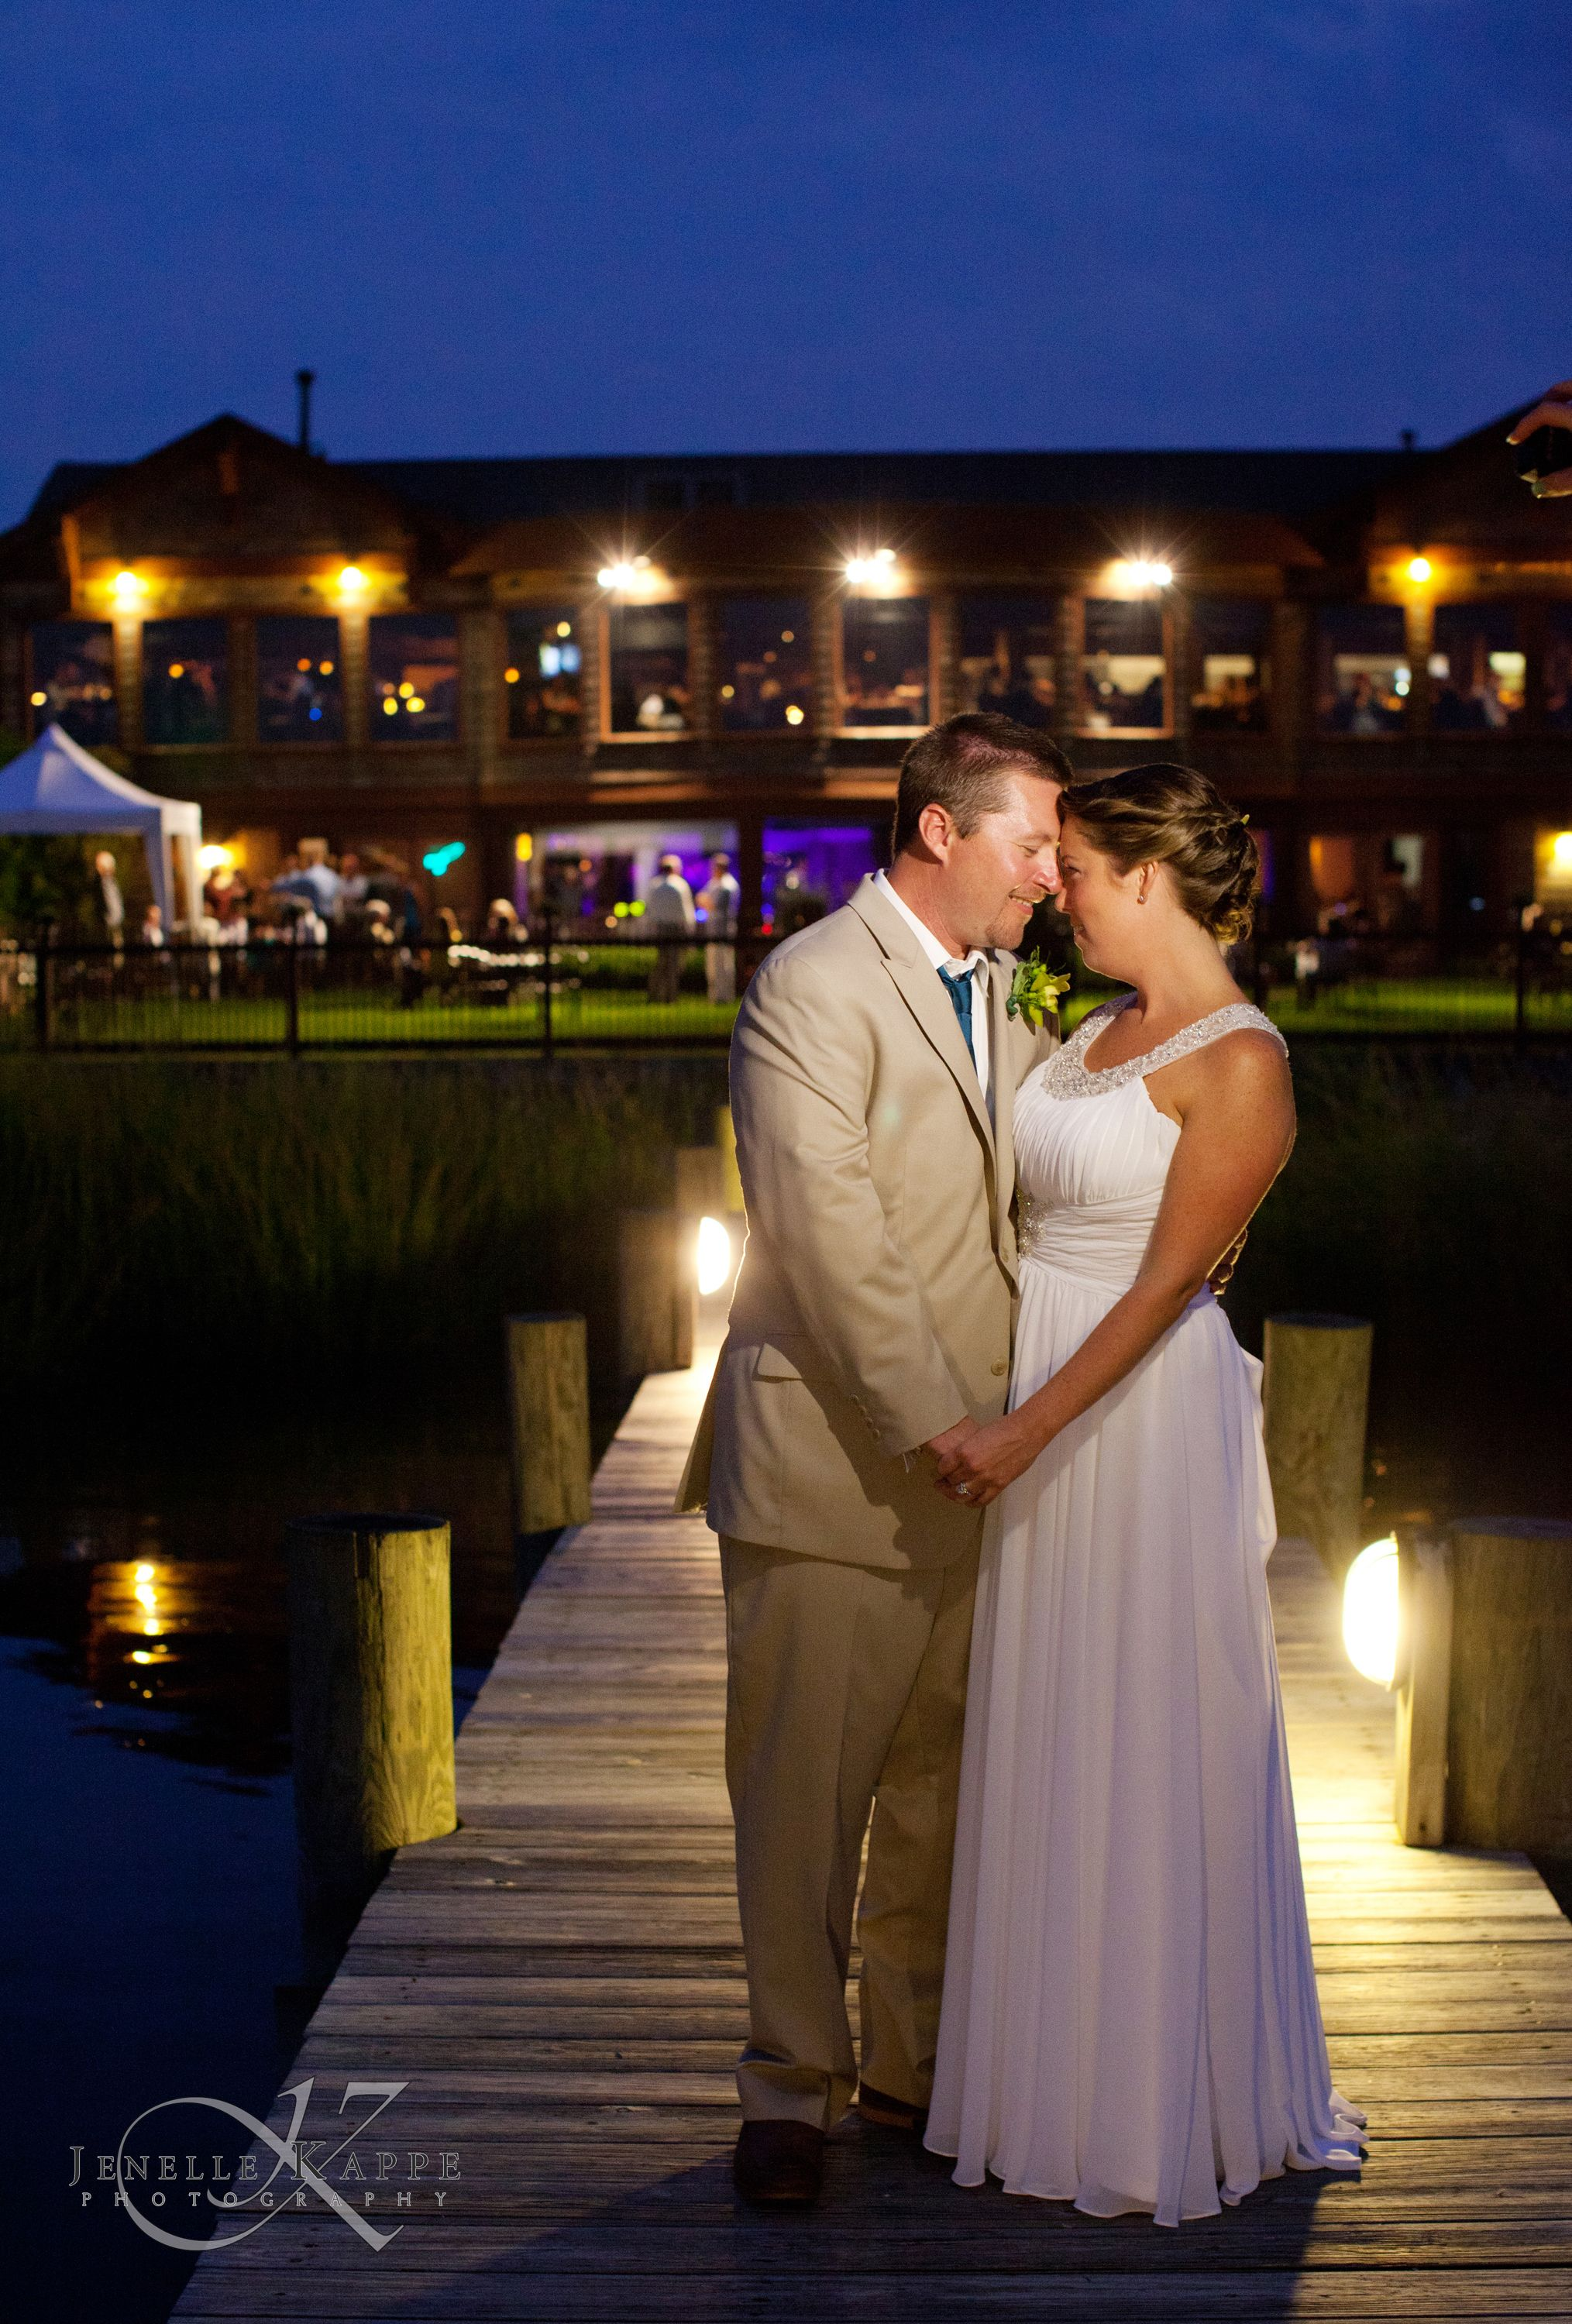 The Beautiful Navesink River Is Luscious Landscape For A Dream Wedding Ceremony And Reception In